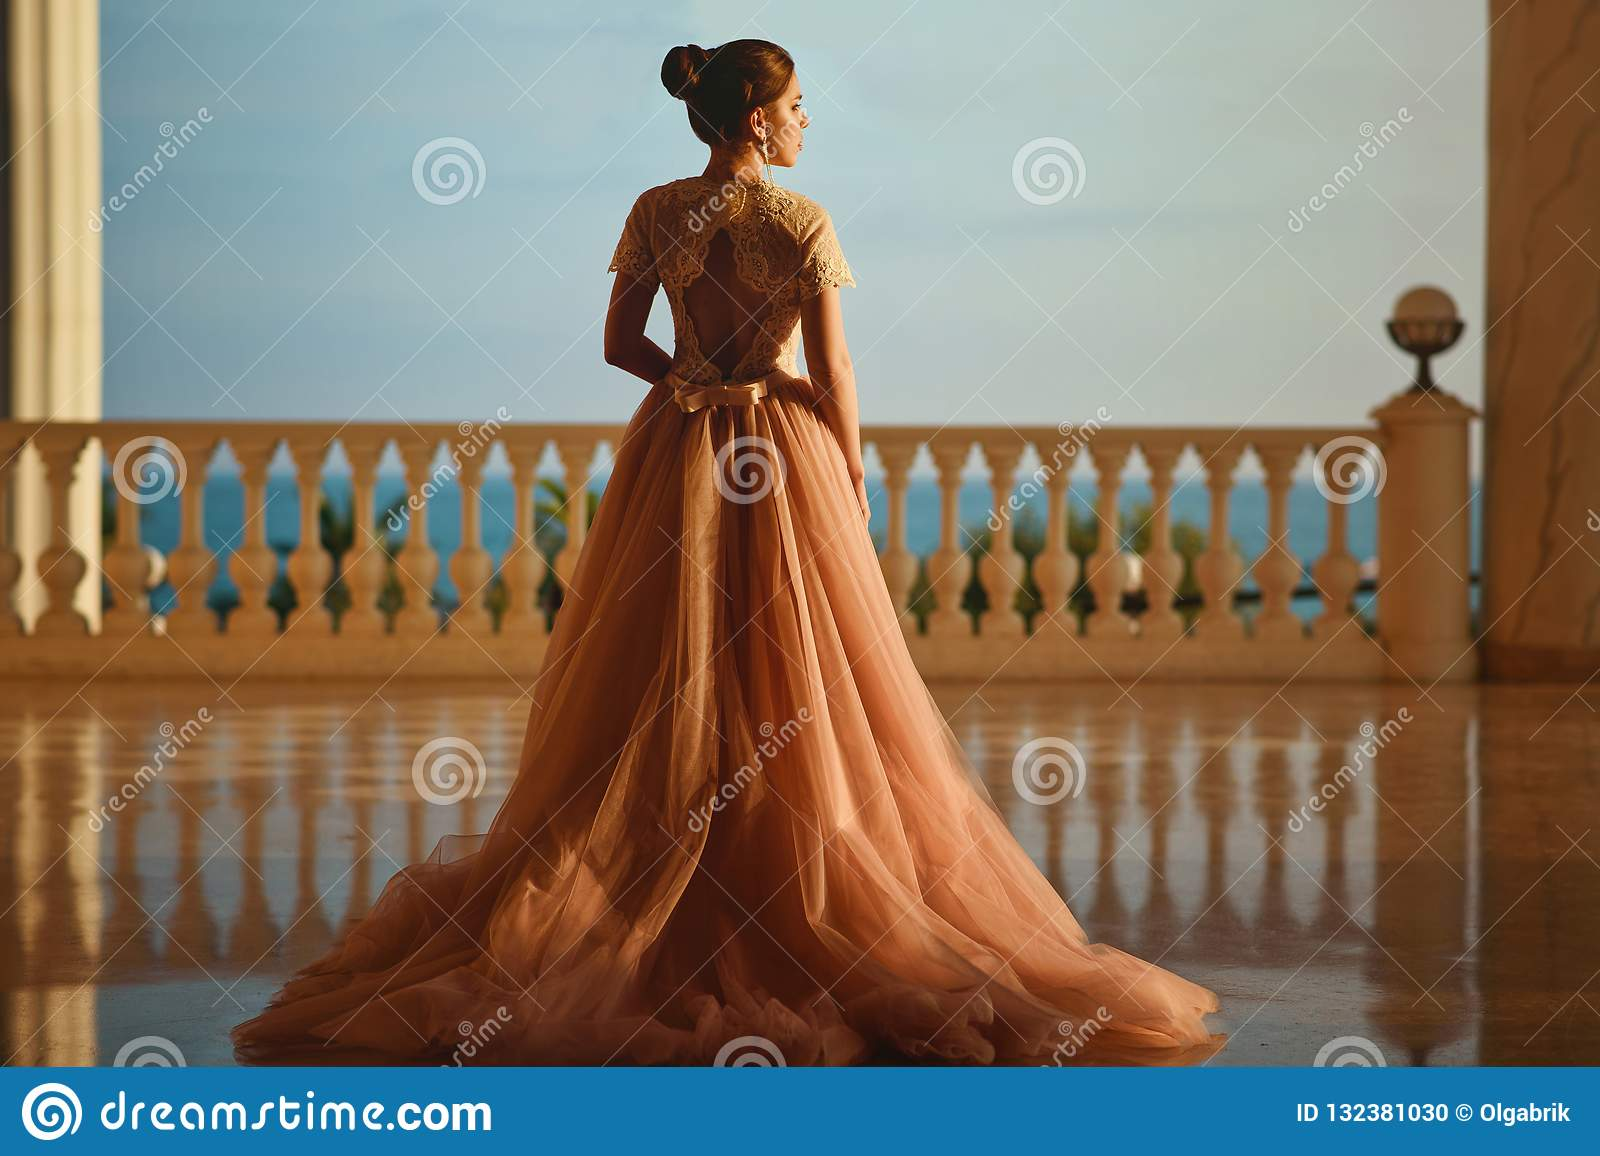 Beautiful woman in luxurious ballroom dress with tulle skirt and lacy top standing on the large balcony with sea view